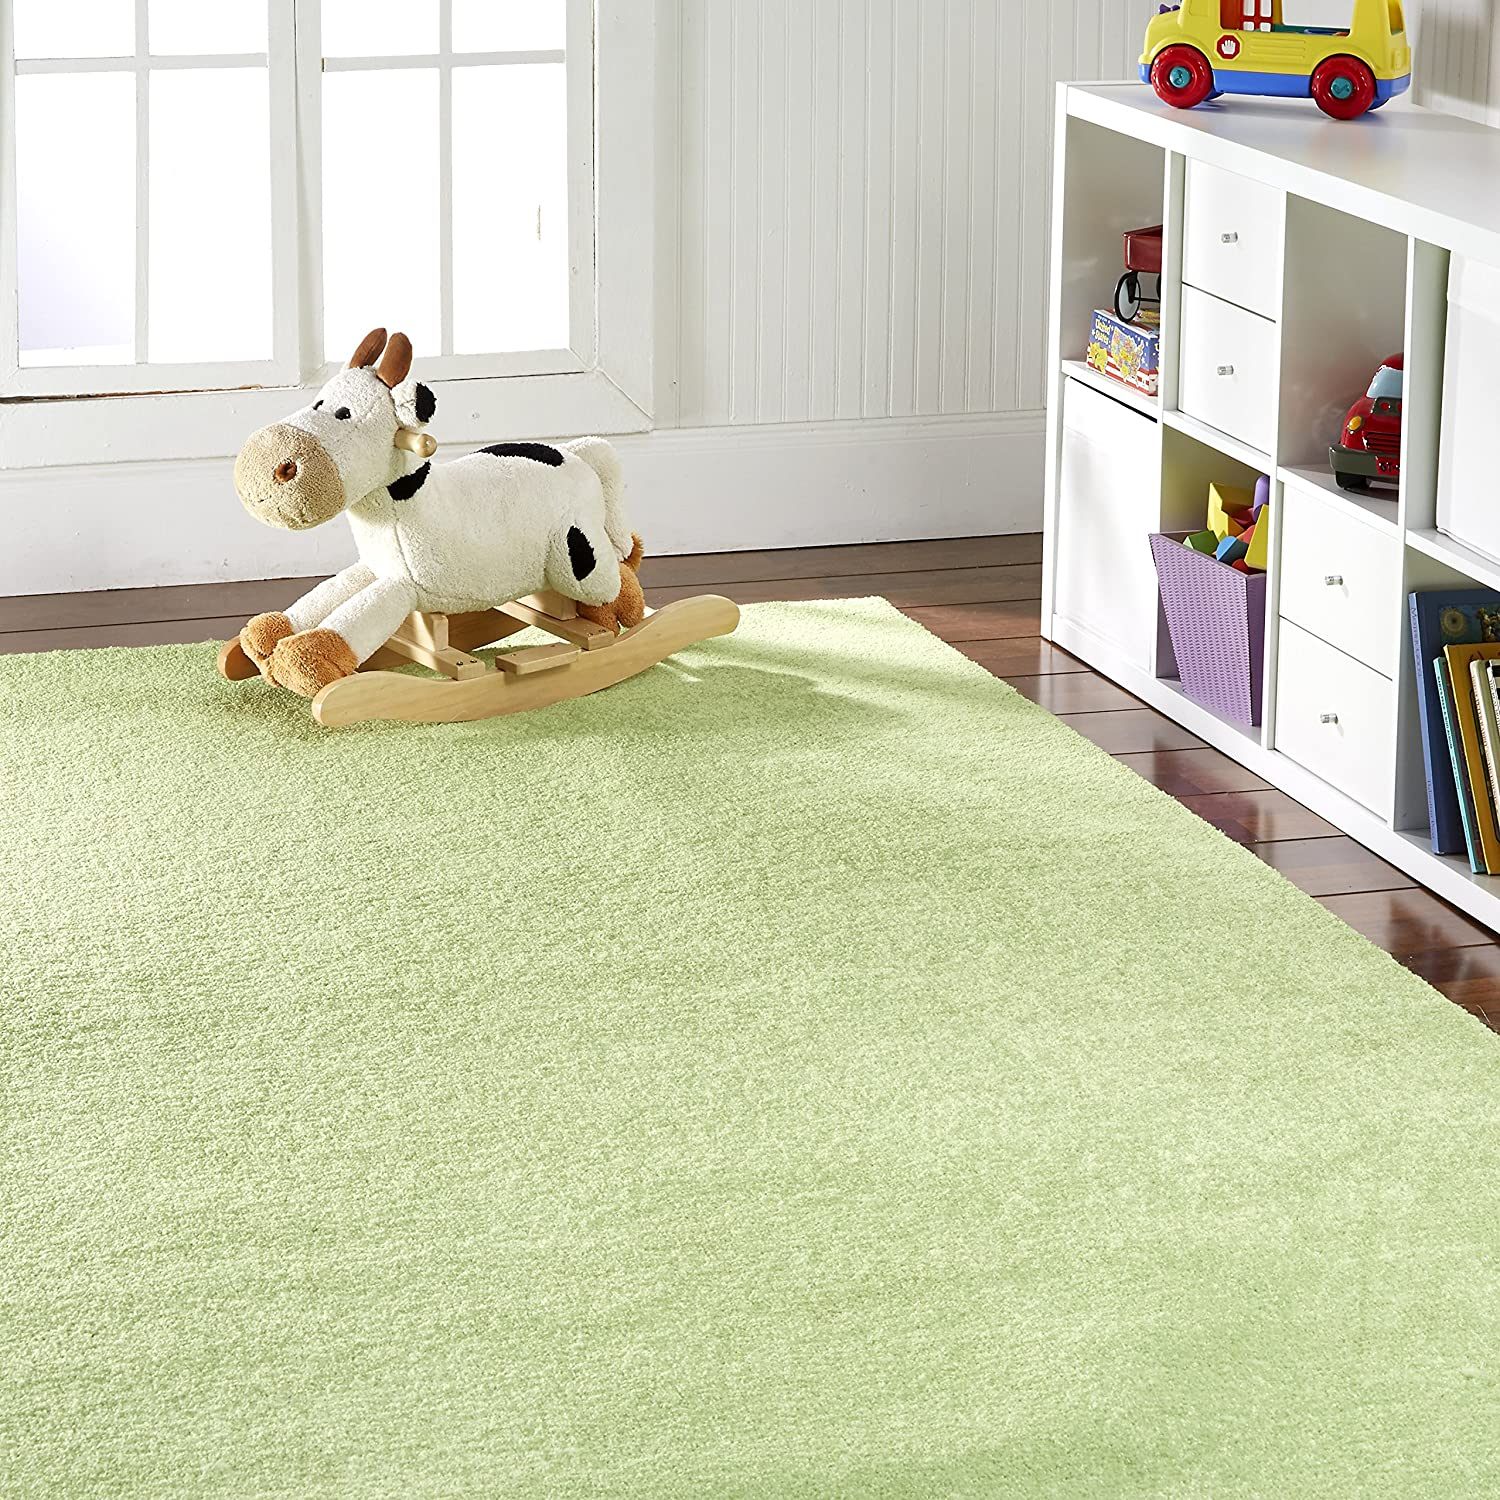 Lime green area rugs for the living room bedroom and kids rooms